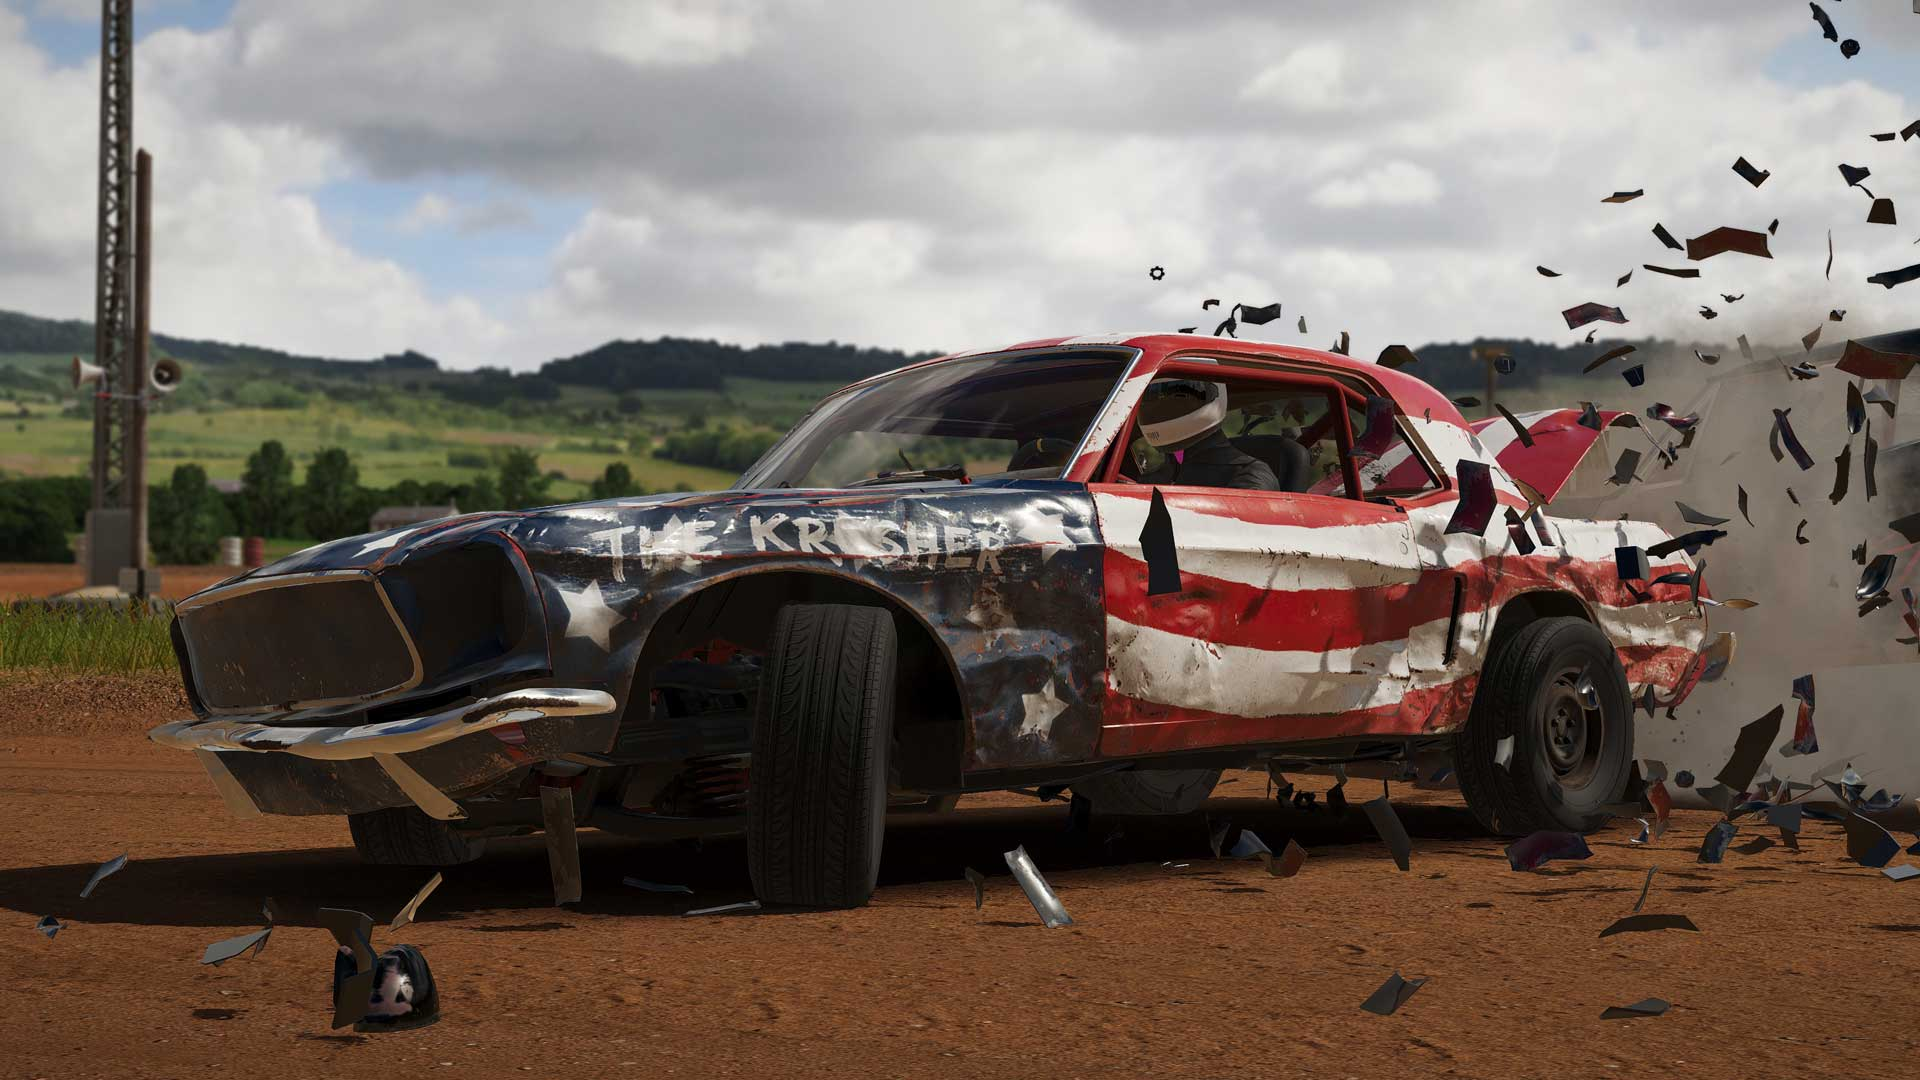 Place 10 out of 10: Wreckfest